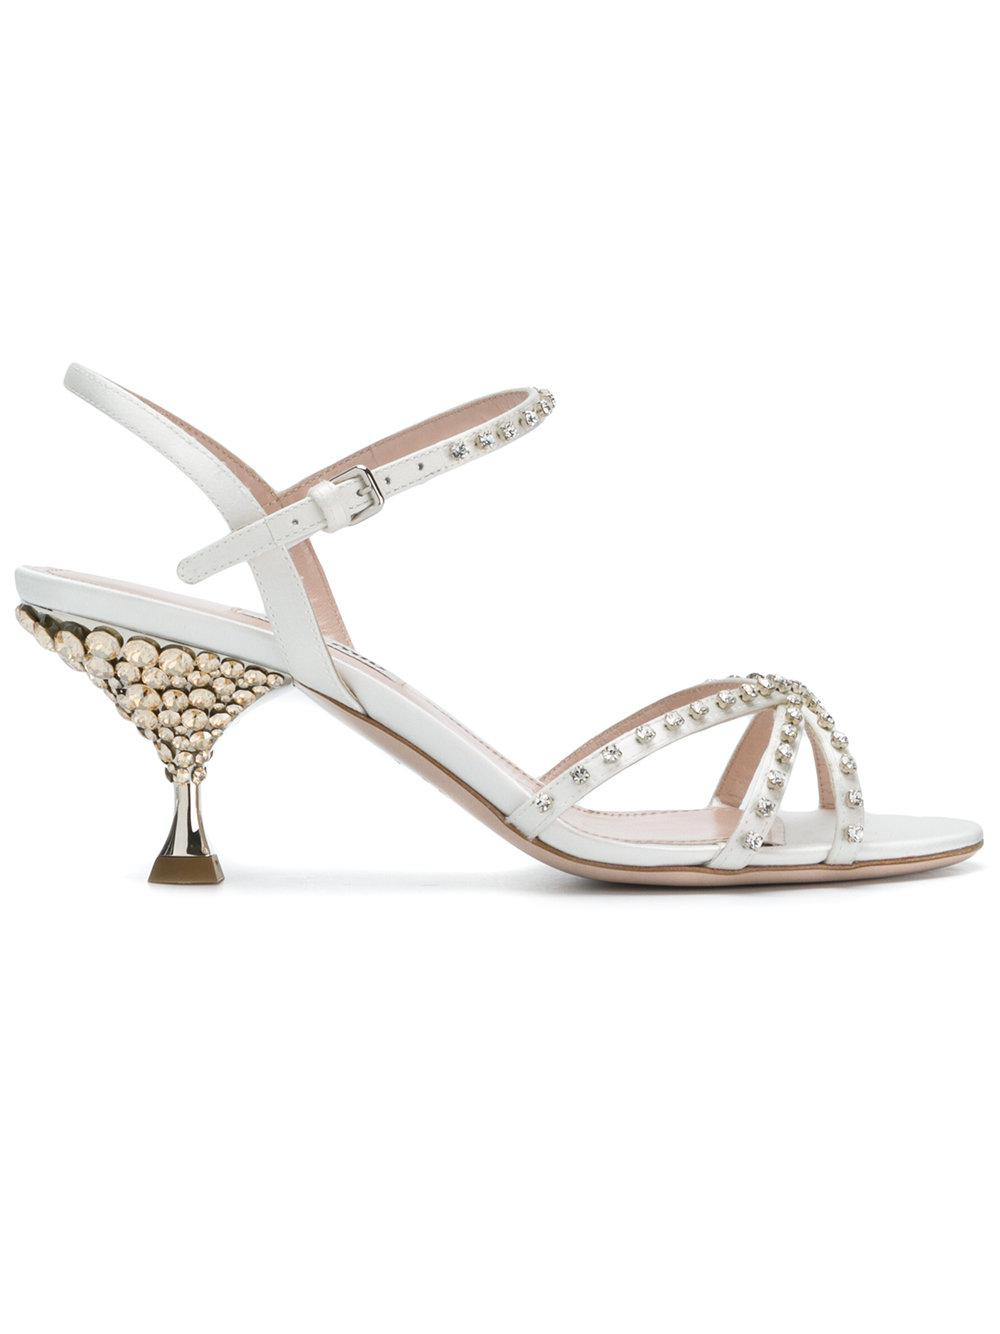 b3c1c61c2 Lyst - Miu Miu Crystal Embellished Sandals in White